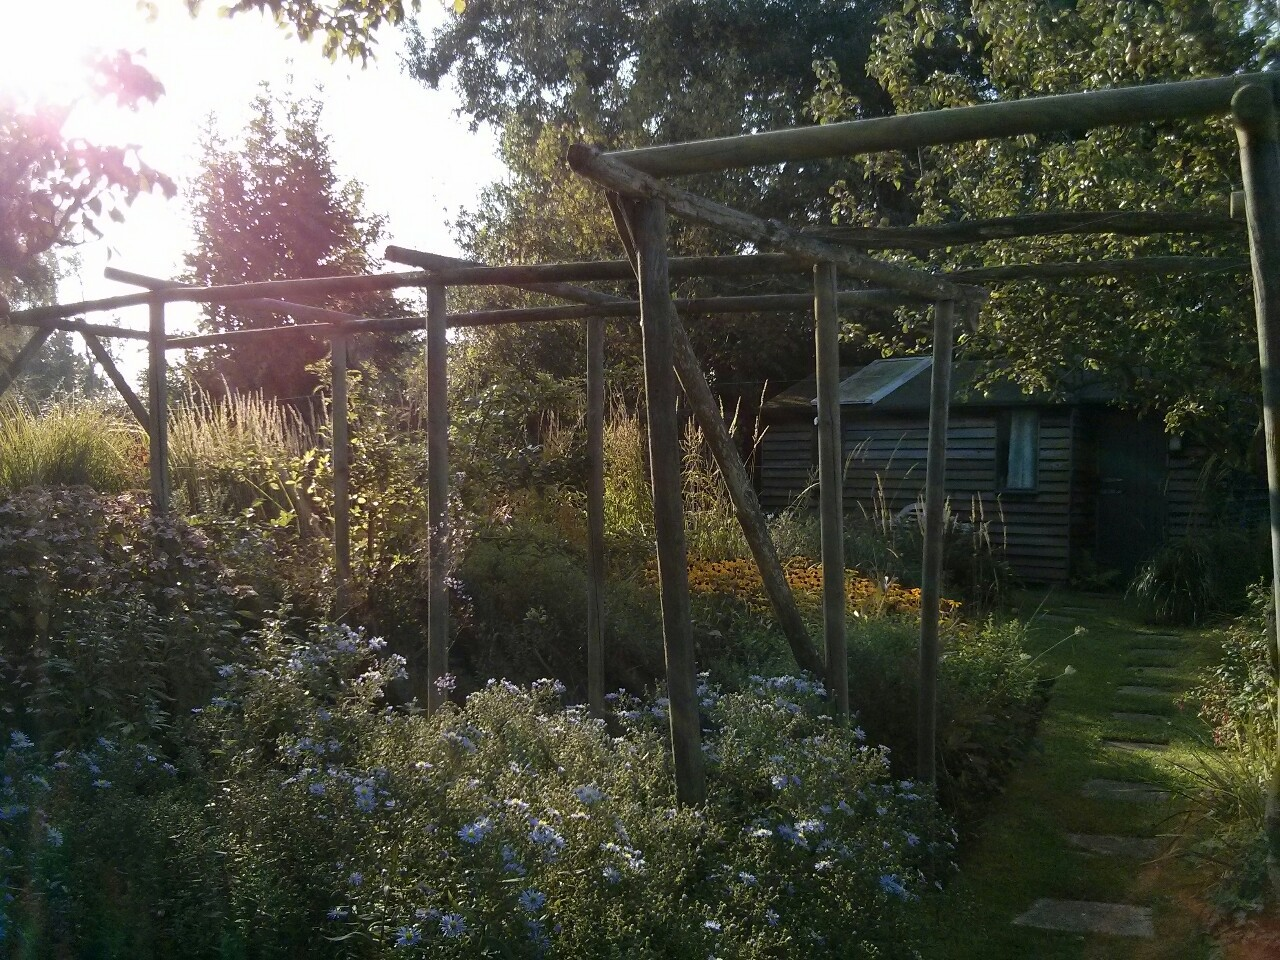 All the dead in the wisteria is now cut back from this trellis and we like the open sweep of the garden without it; so I think it's time to dig the wisteria out and for all the trellis to go. For 20 years it has divided the garden with a shaded walk into two large spaces but it's time for a change.